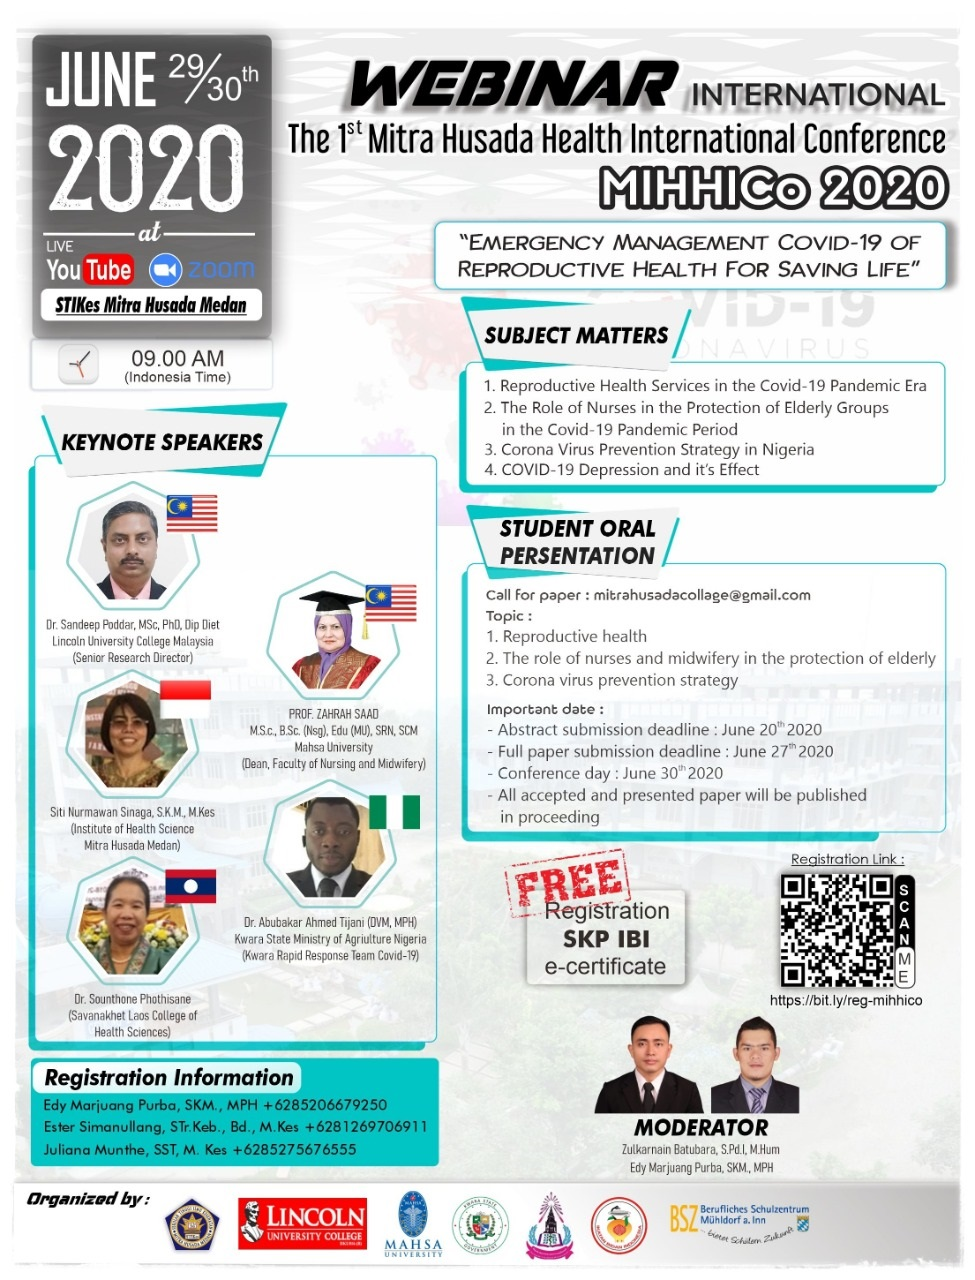 [LIVE] Webinar International The 1(st) Mitra Husada Health International Conference MIHHICo 2020